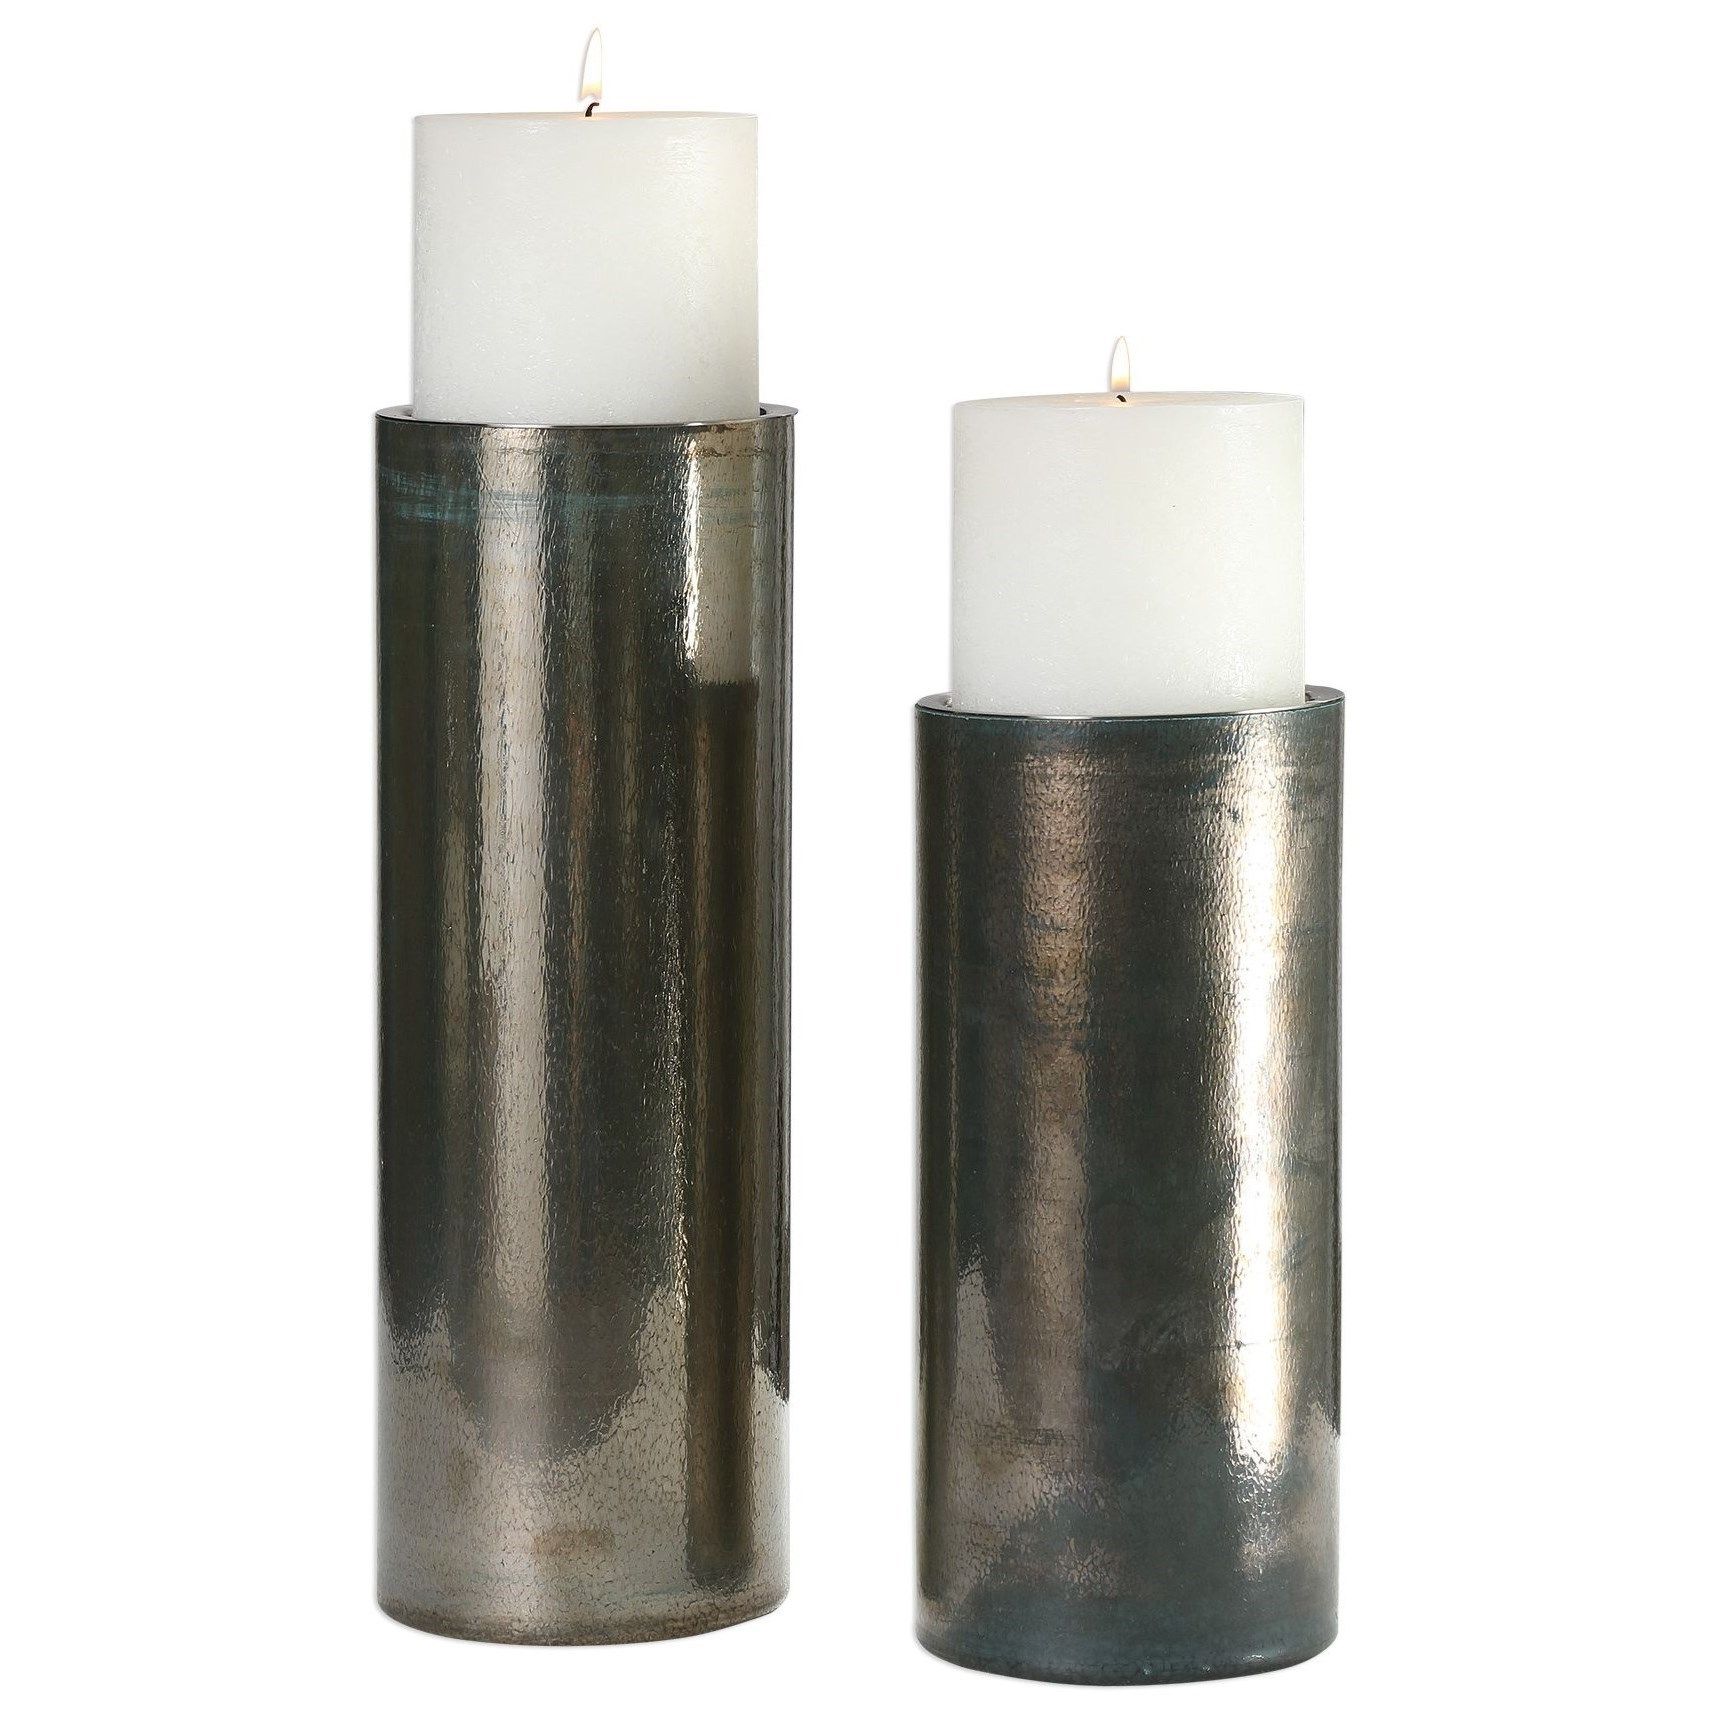 Accessories - Candle Holders Amala Iridescent Candleholders by Uttermost at Dunk & Bright Furniture